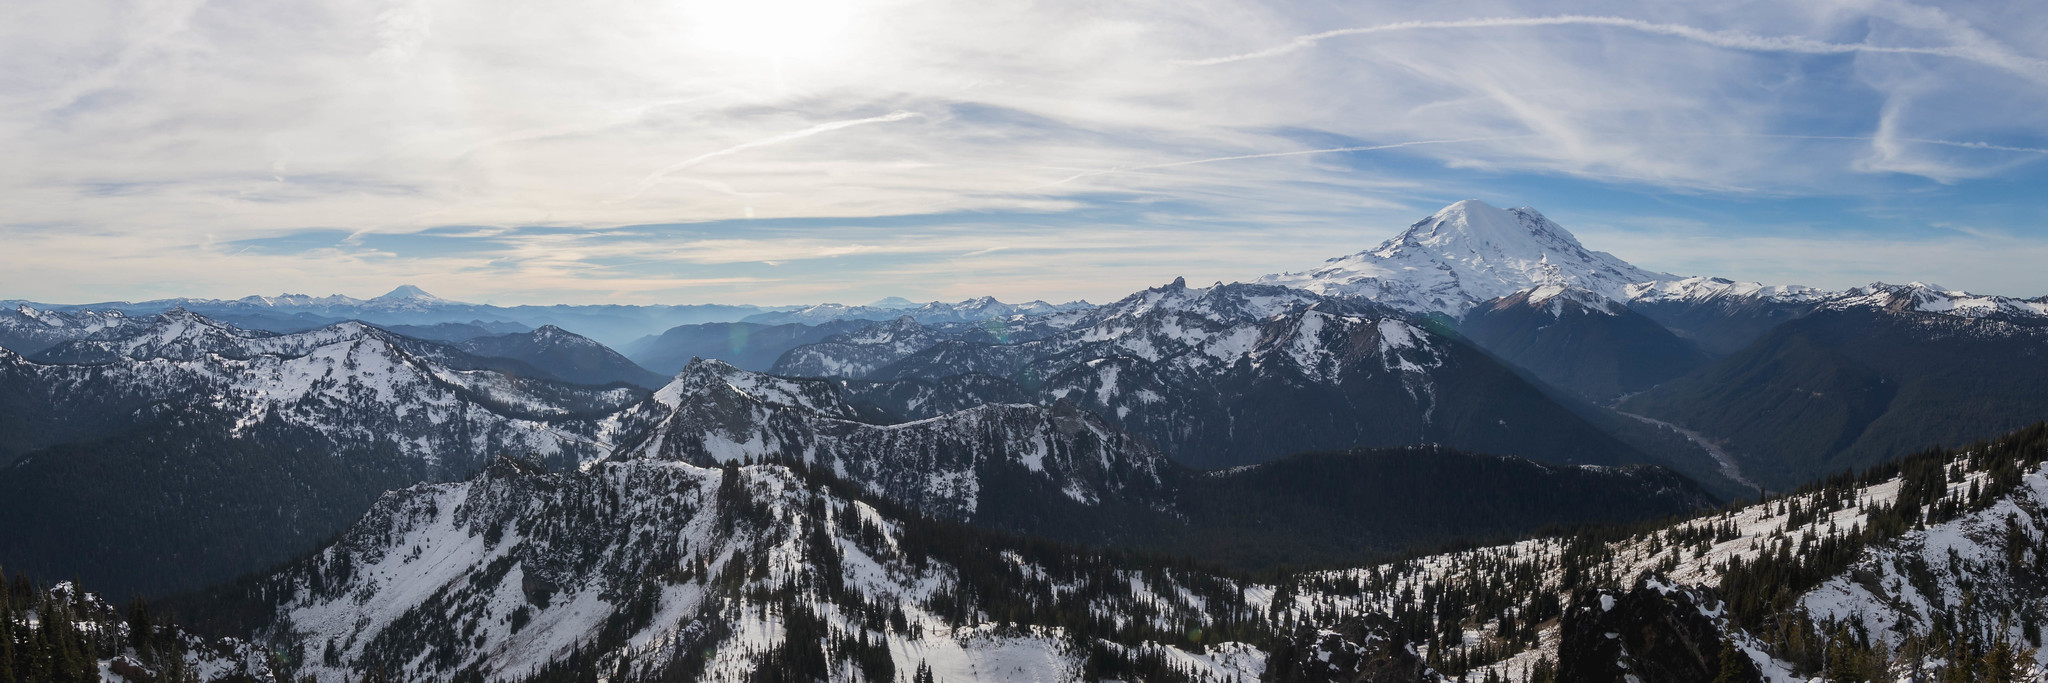 Southwest panoramic view from Chinook Peak